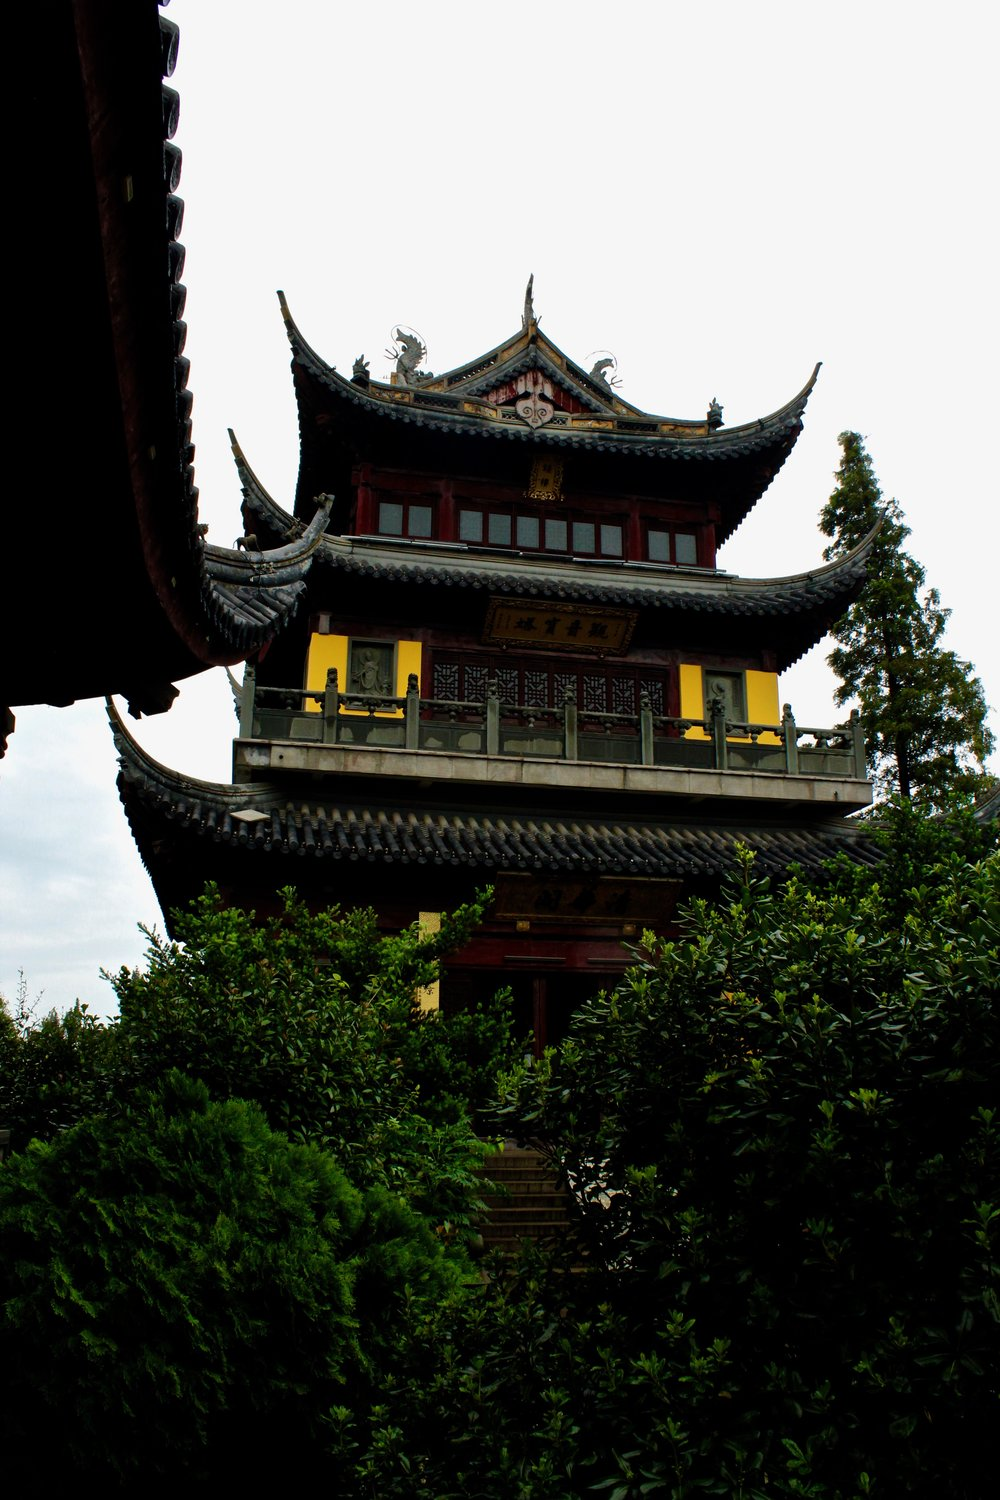 The Yunjin Monastery.